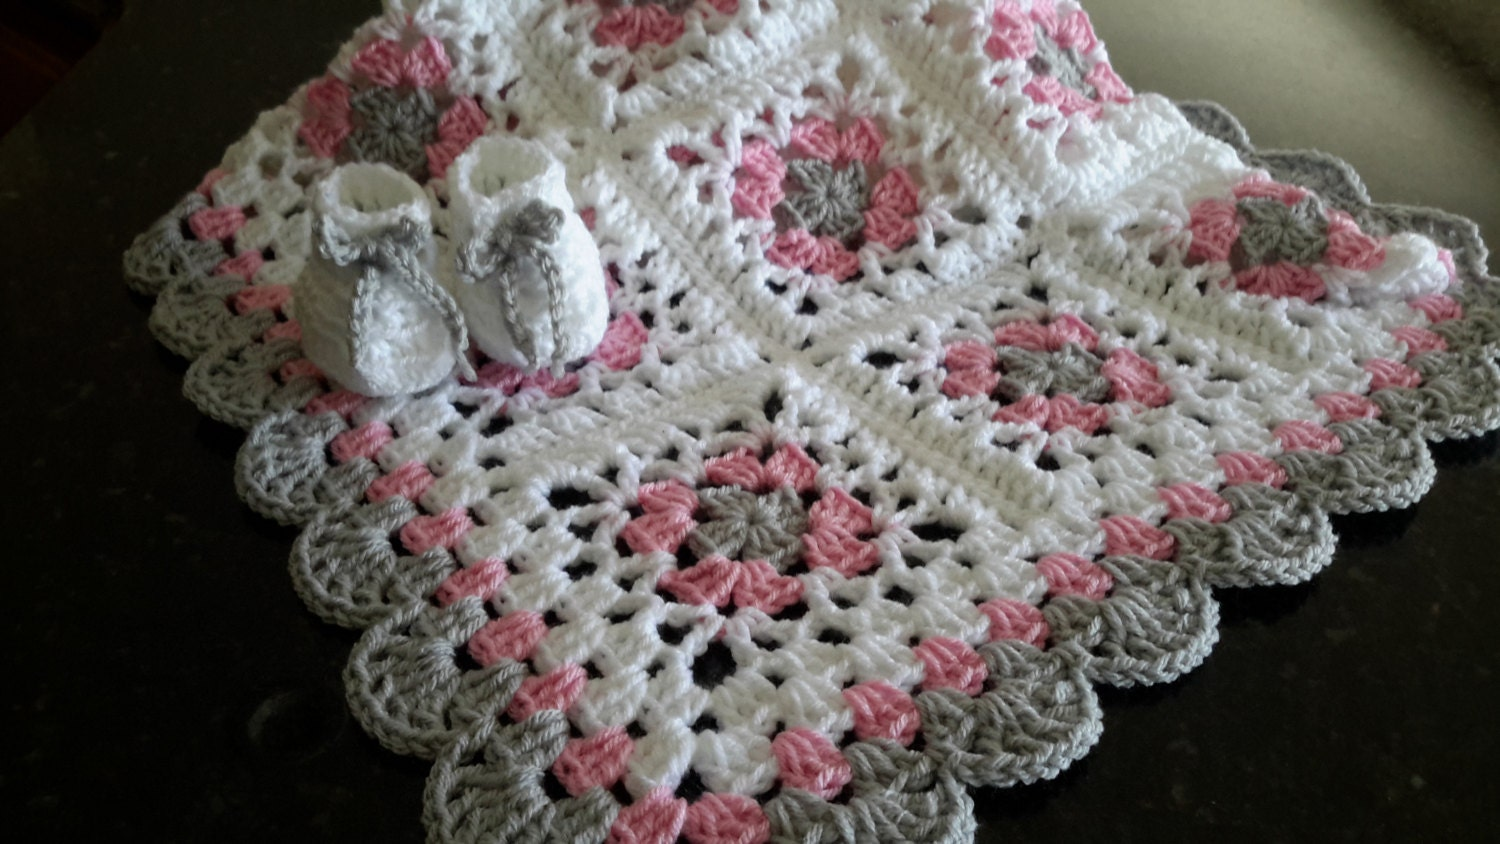 Crochet Granny Square Baby Afghan Pattern : baby girl lacy granny square baby crochet blanket afghan